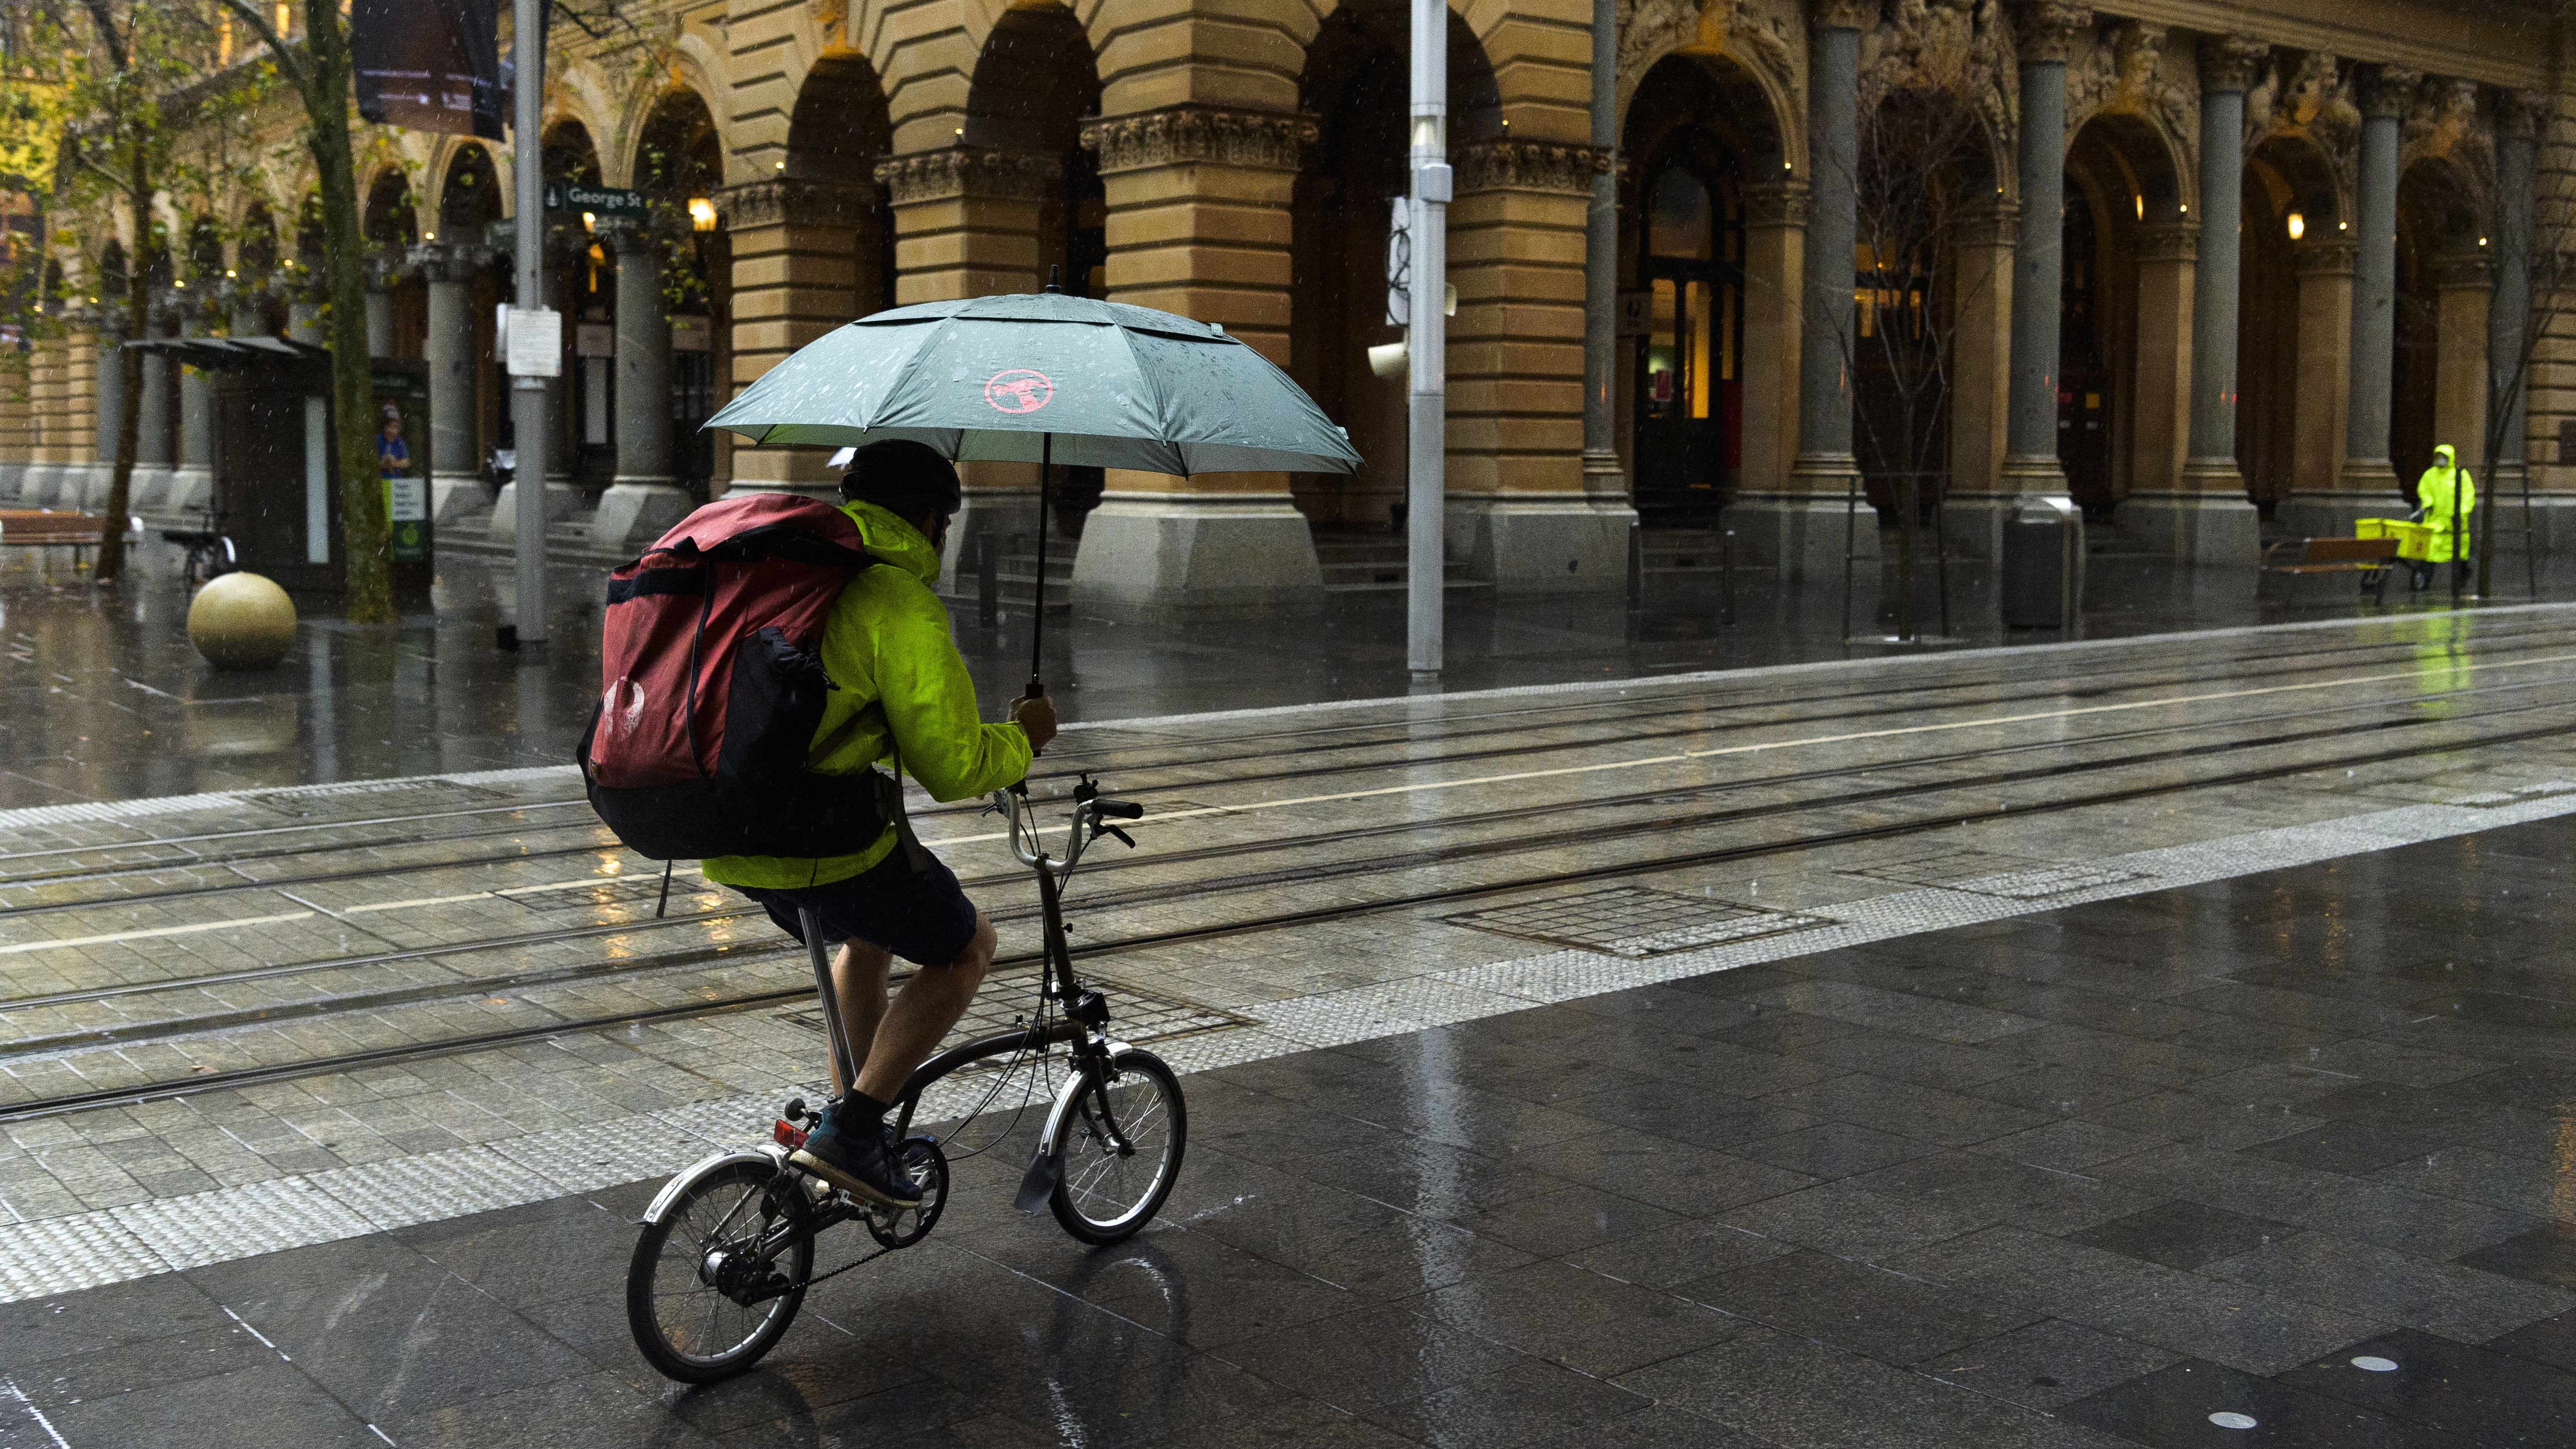 Sydney is being hit by rain and wind.